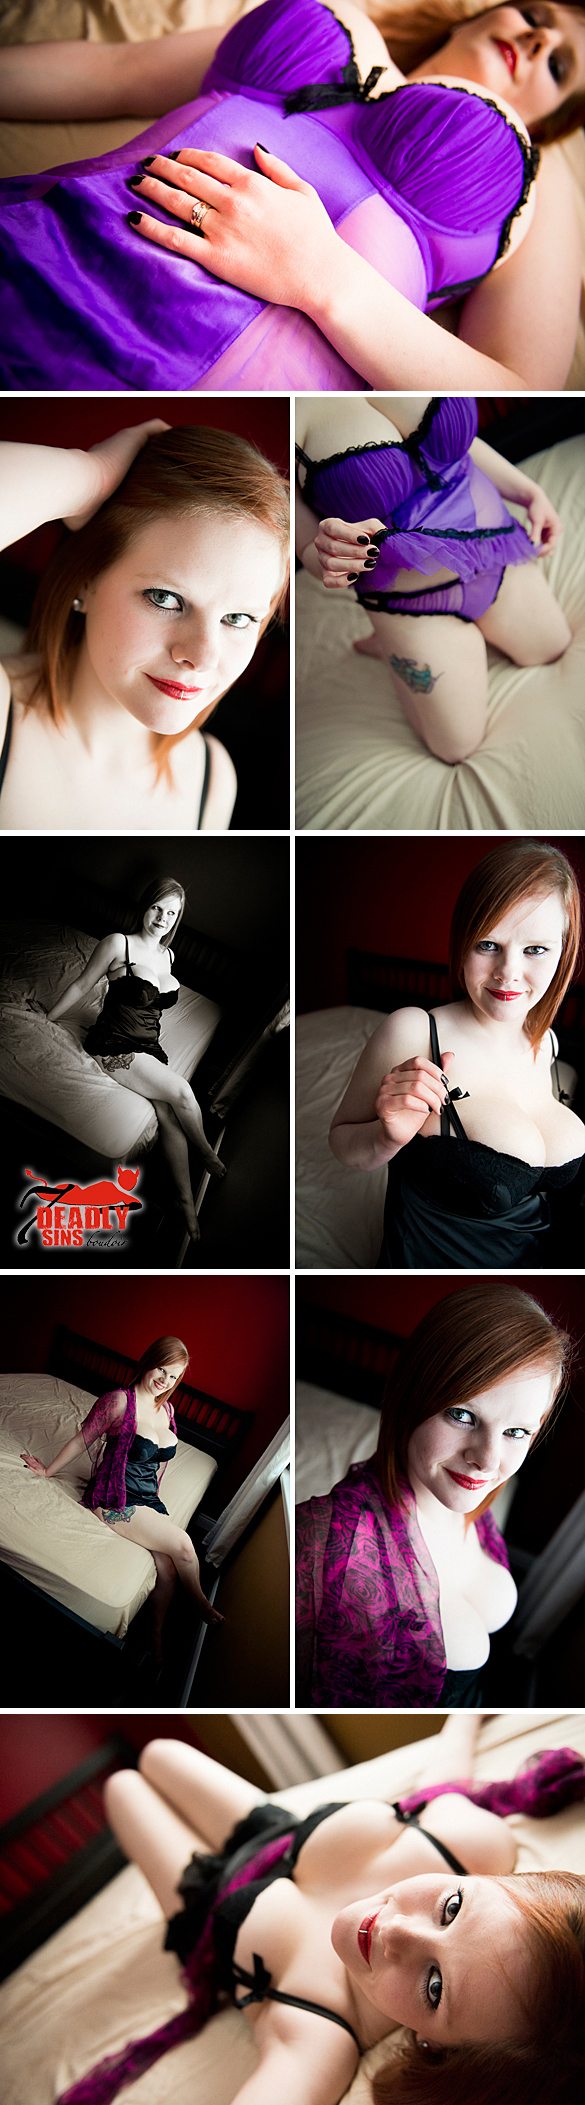 edmonton pinup photography